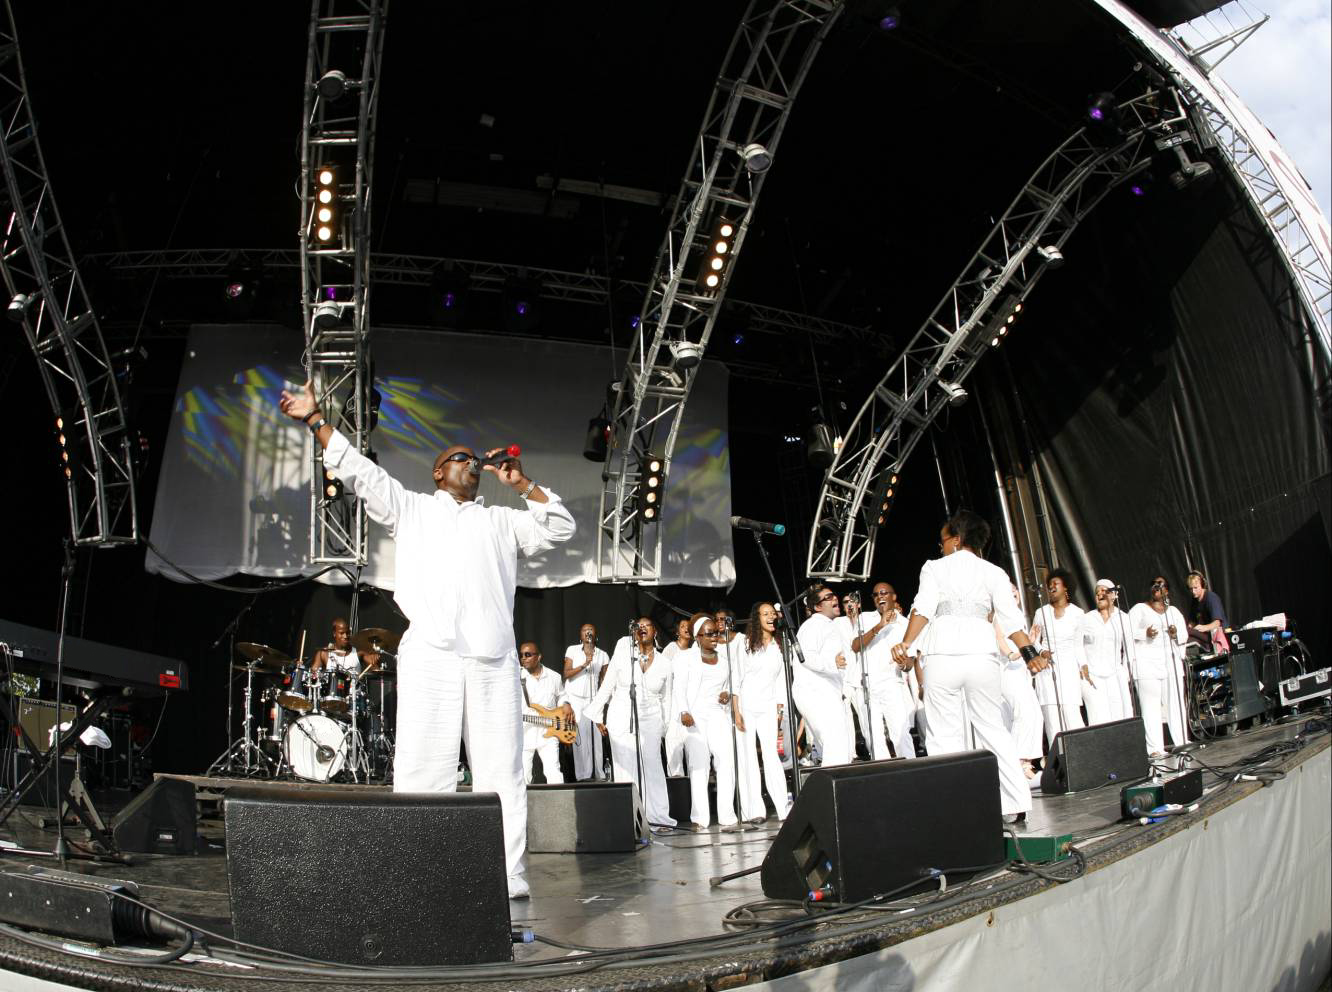 2011 Dates London Community Gospel Choir